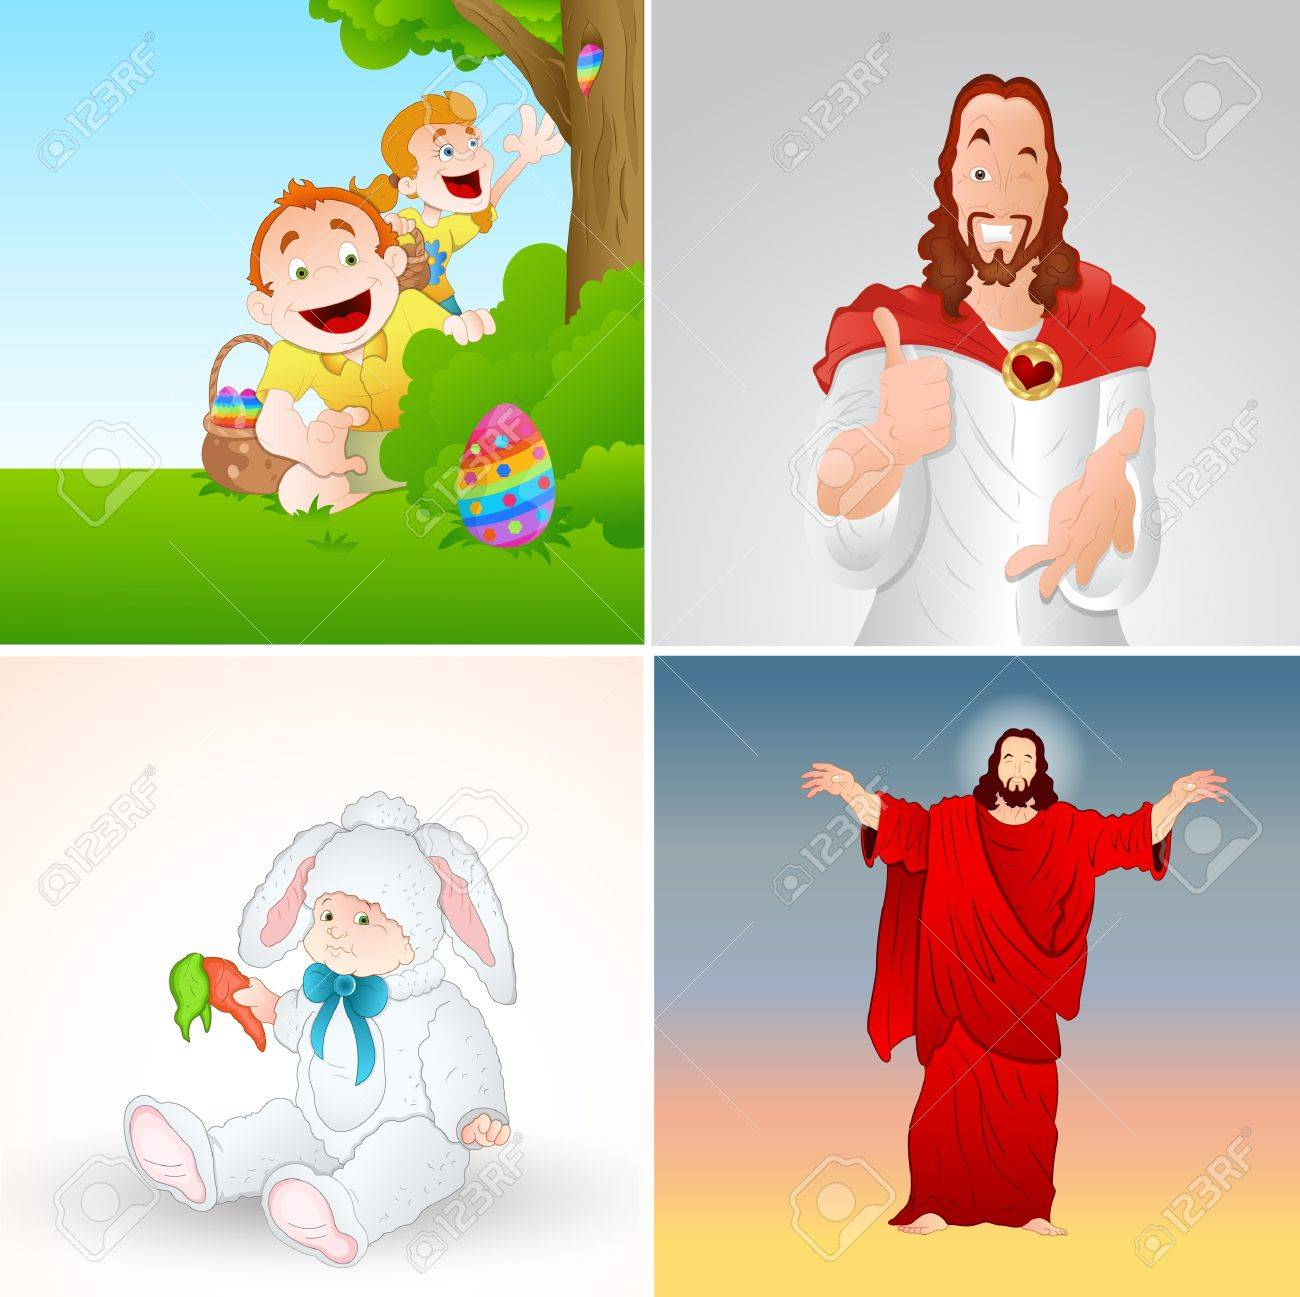 free easter bunny stock photos royalty free free easter bunny